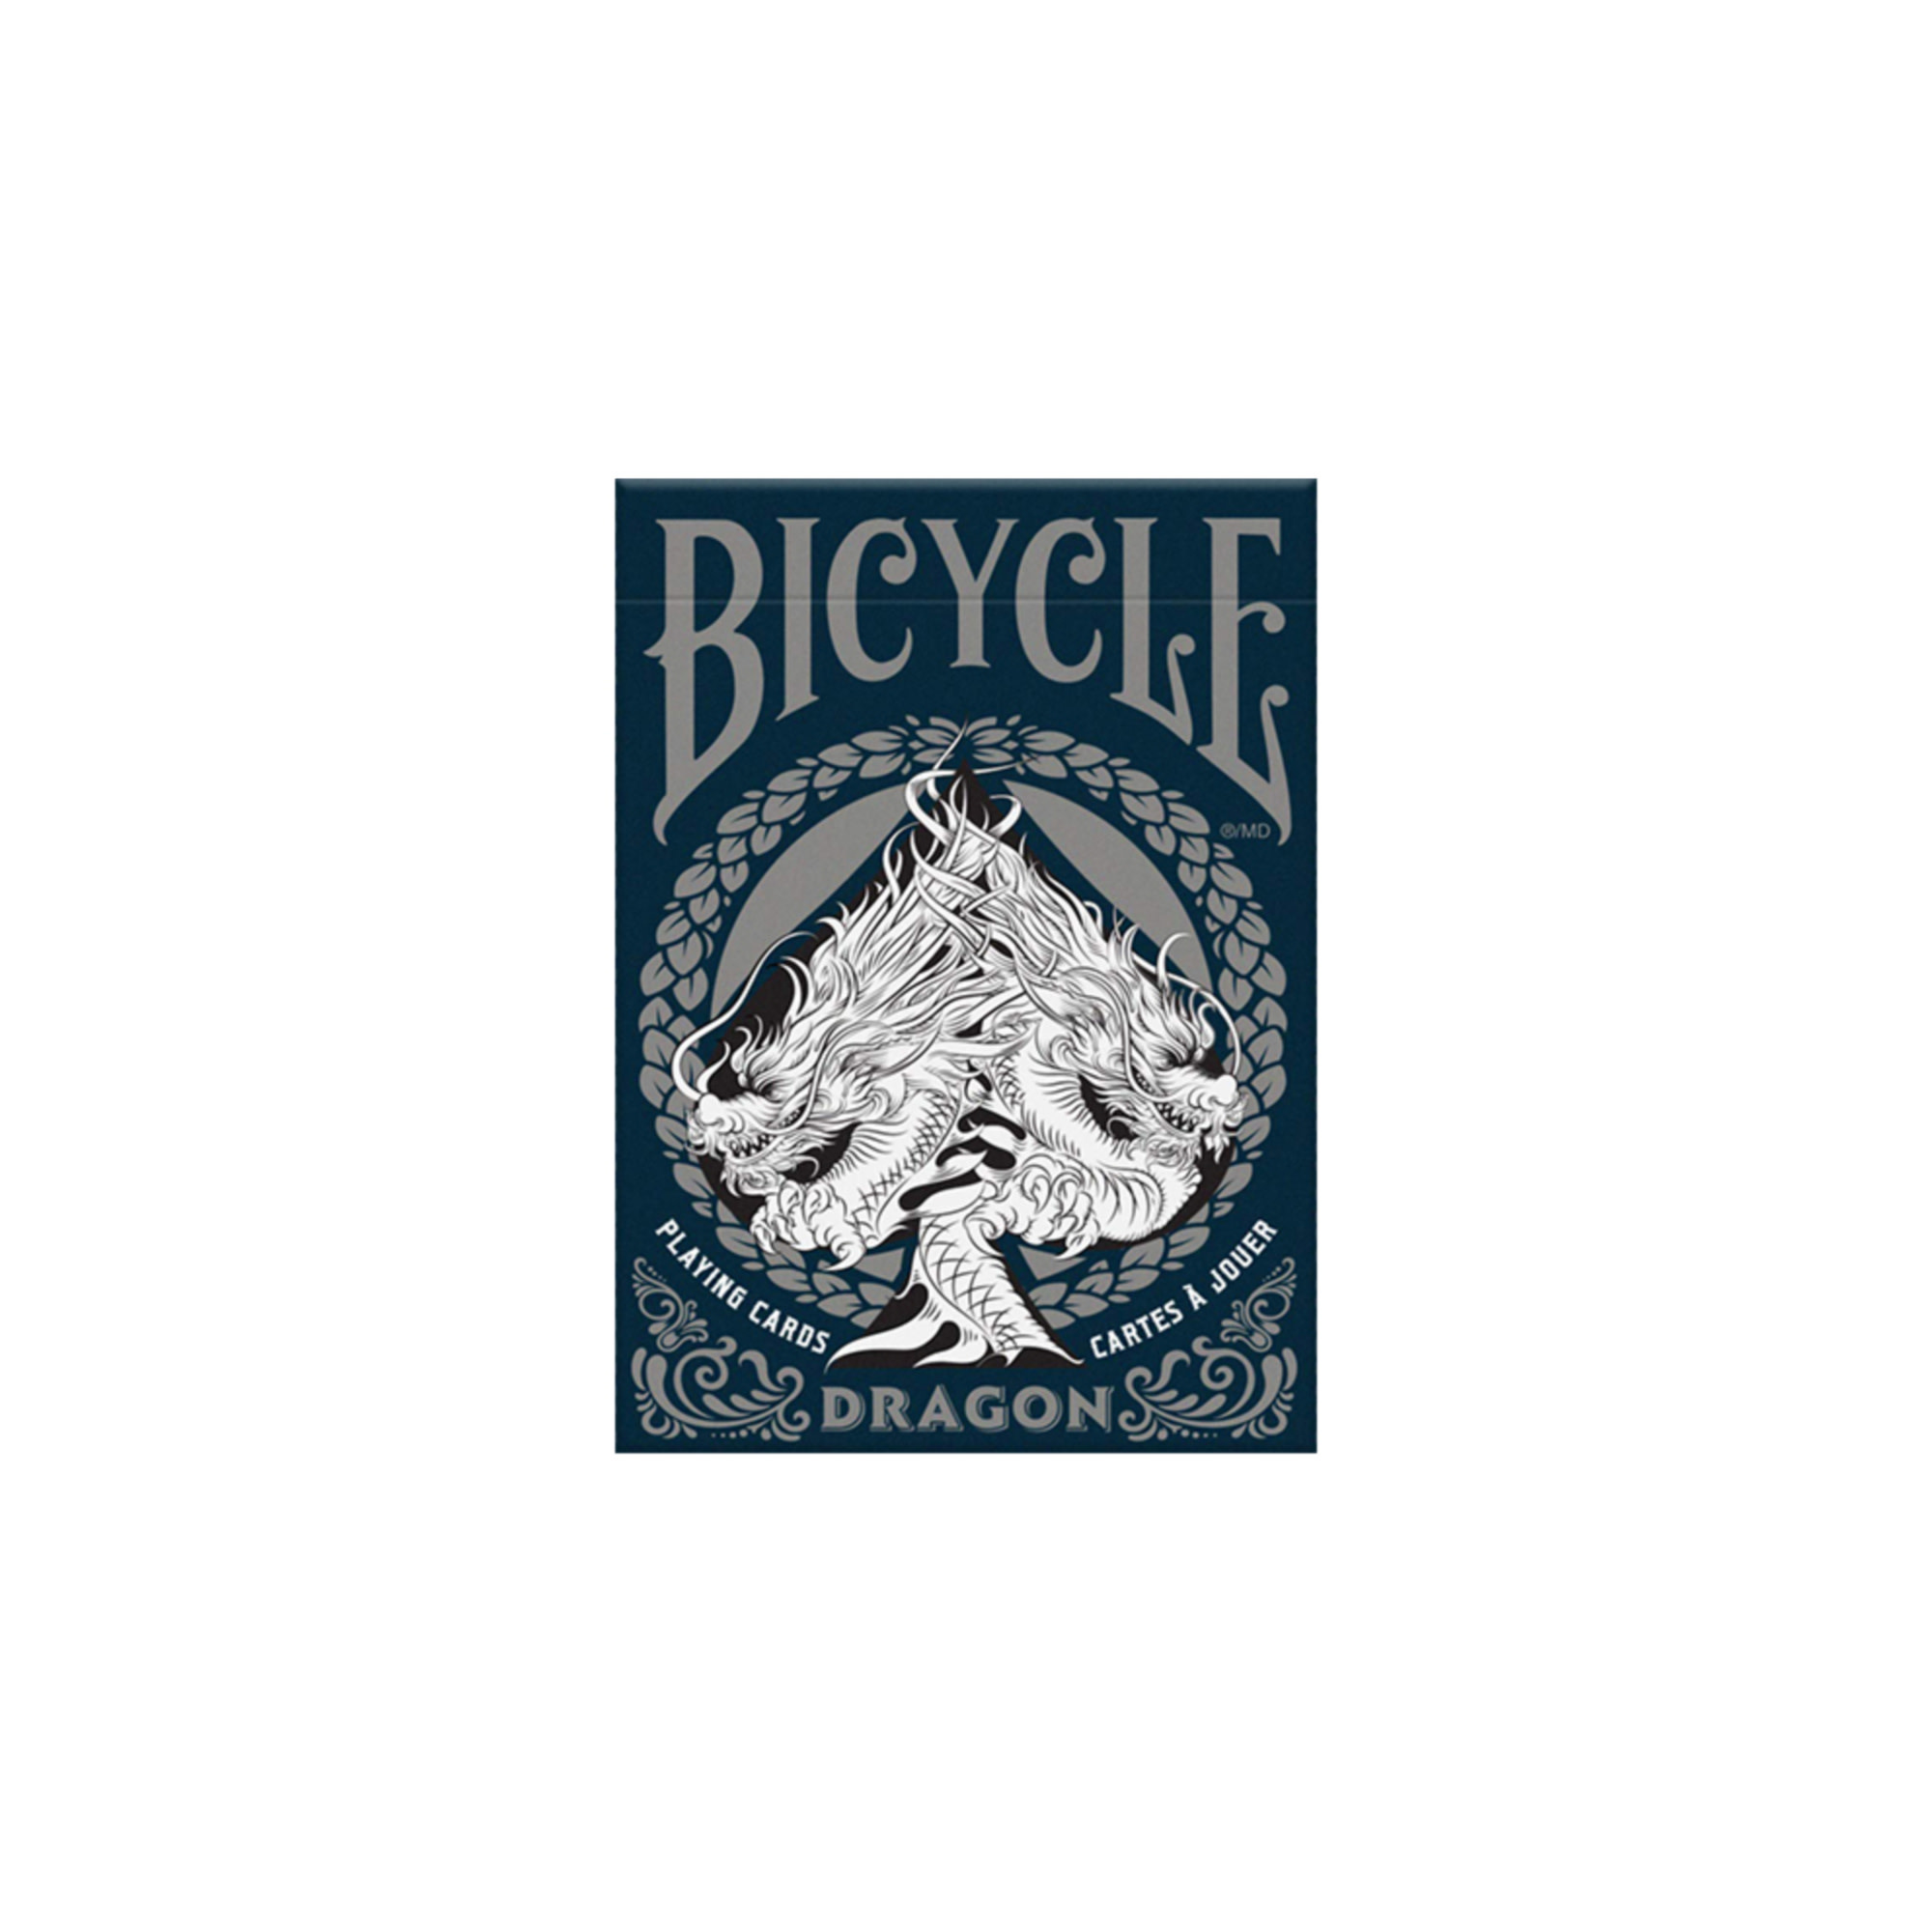 Bicycle Bicycle - Dragon Cards